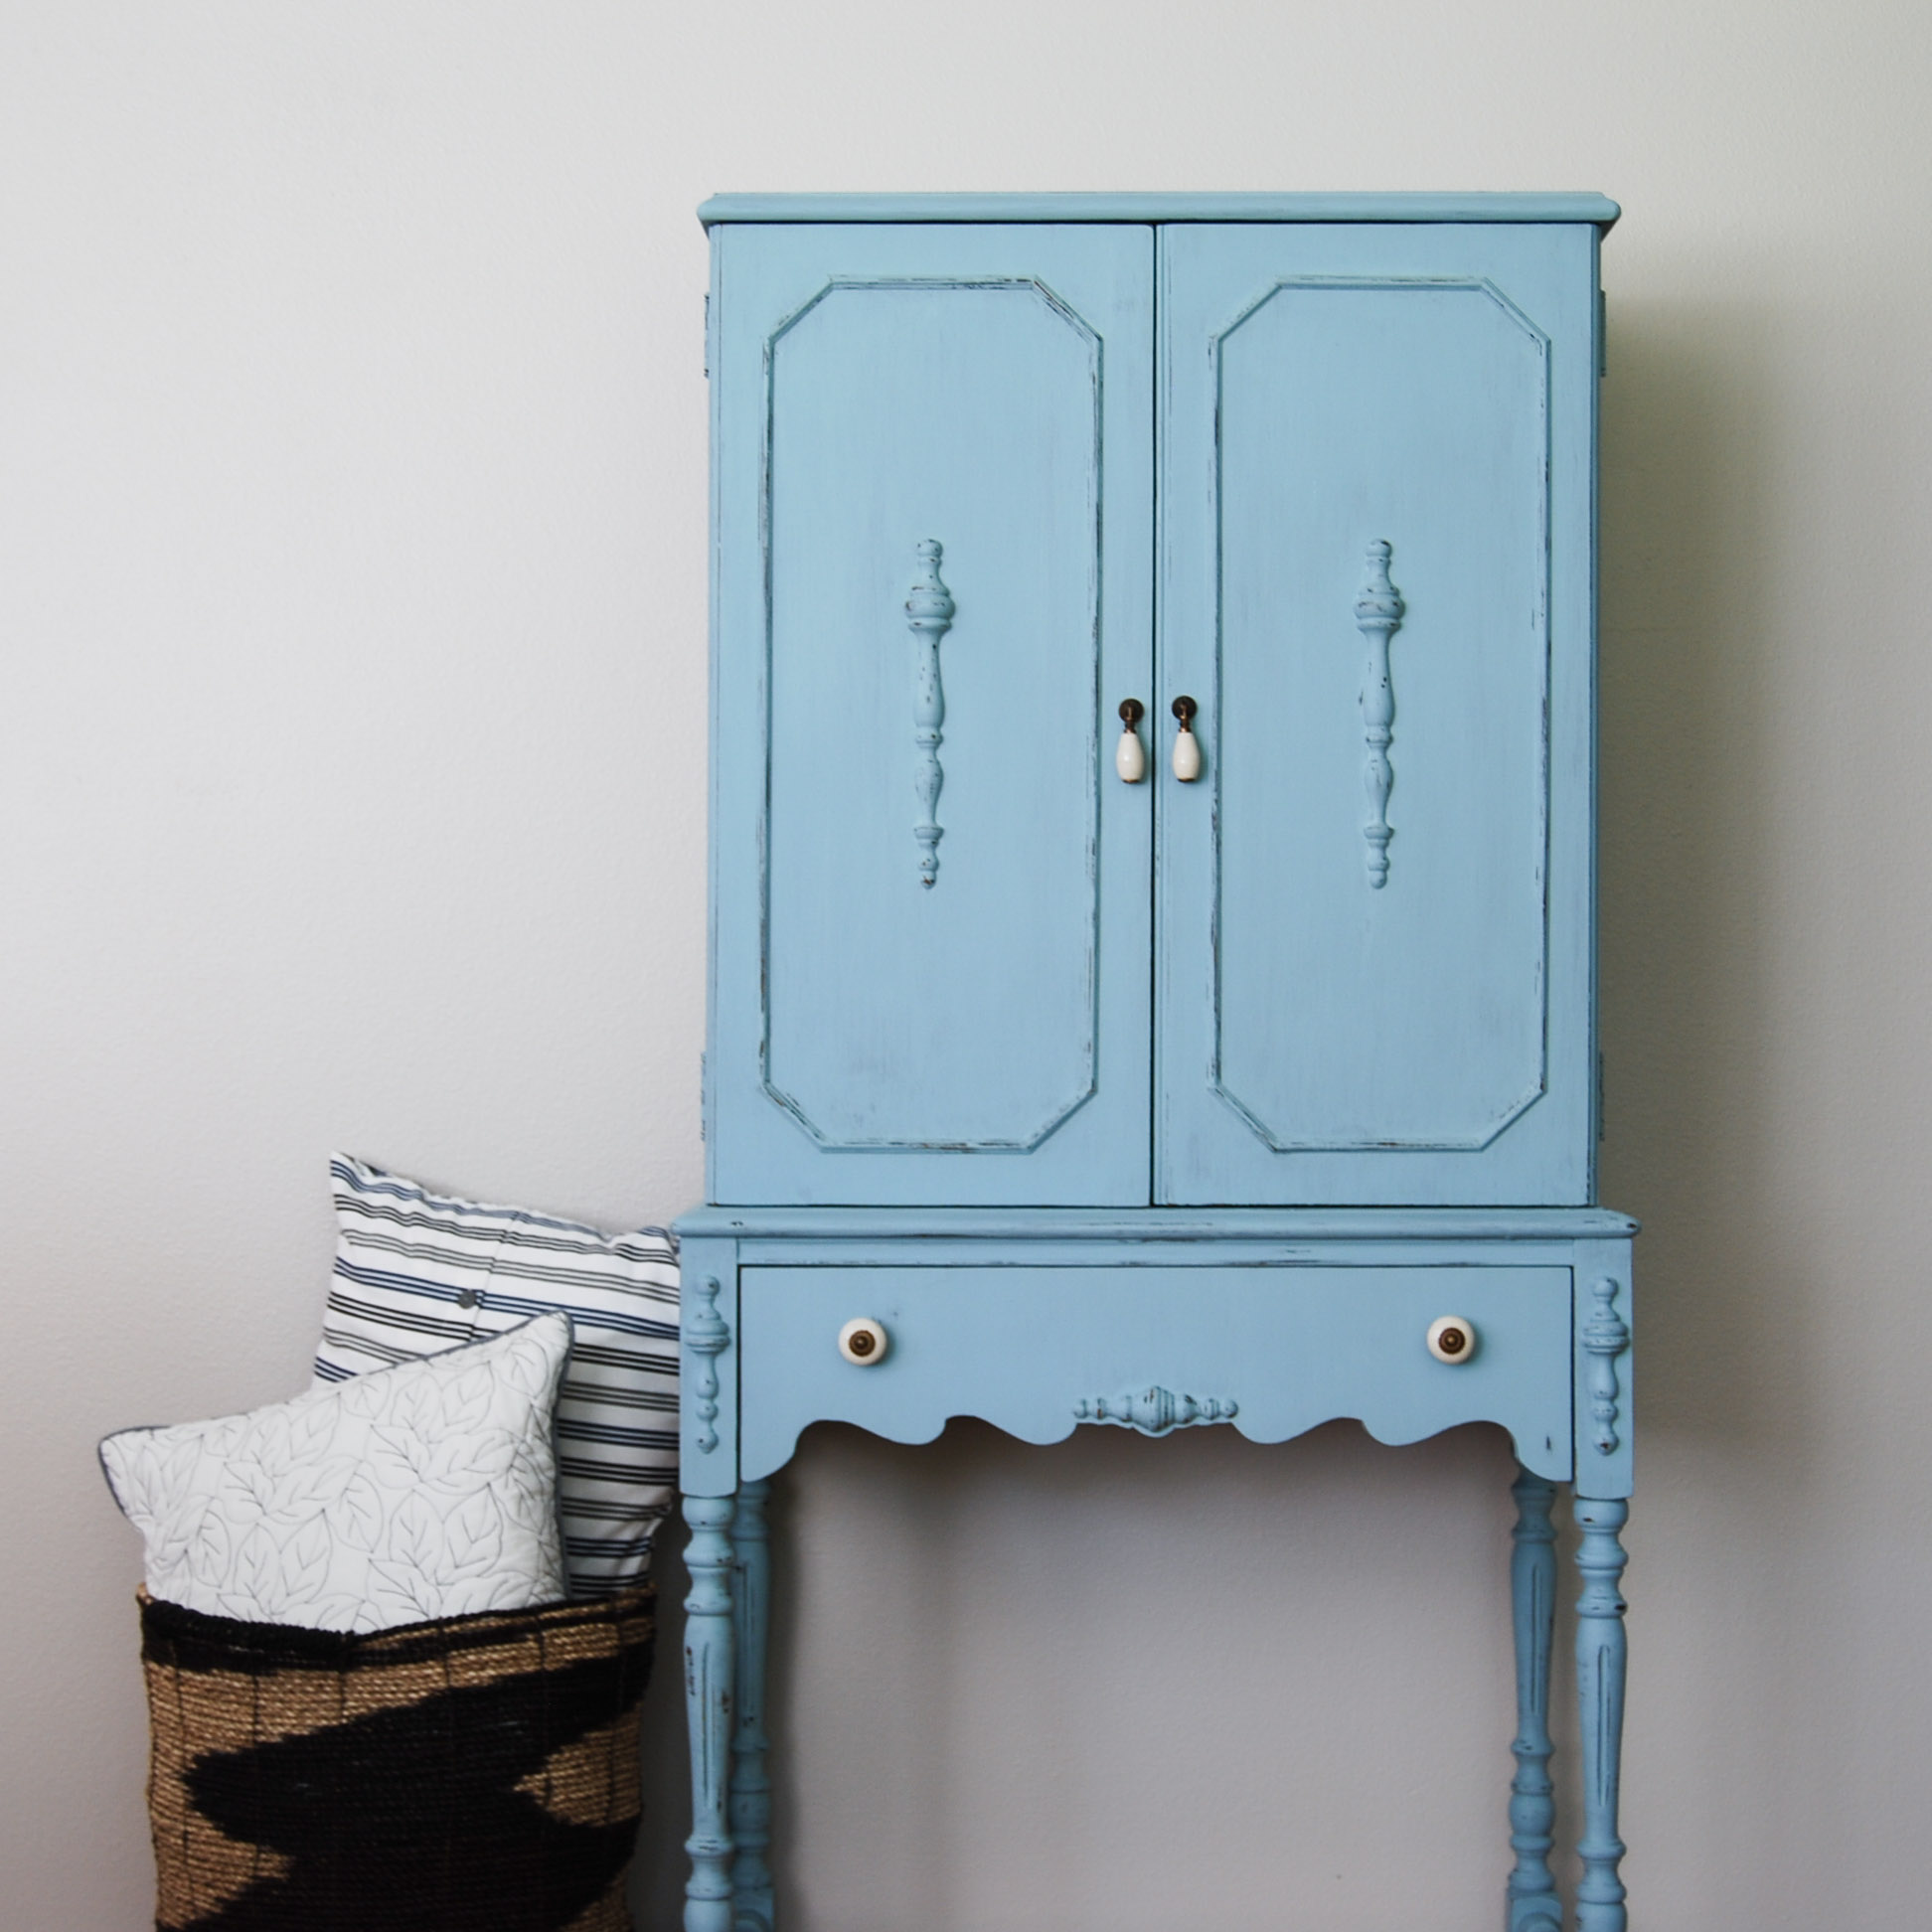 How Long For Paint To Dry Before Cabinet